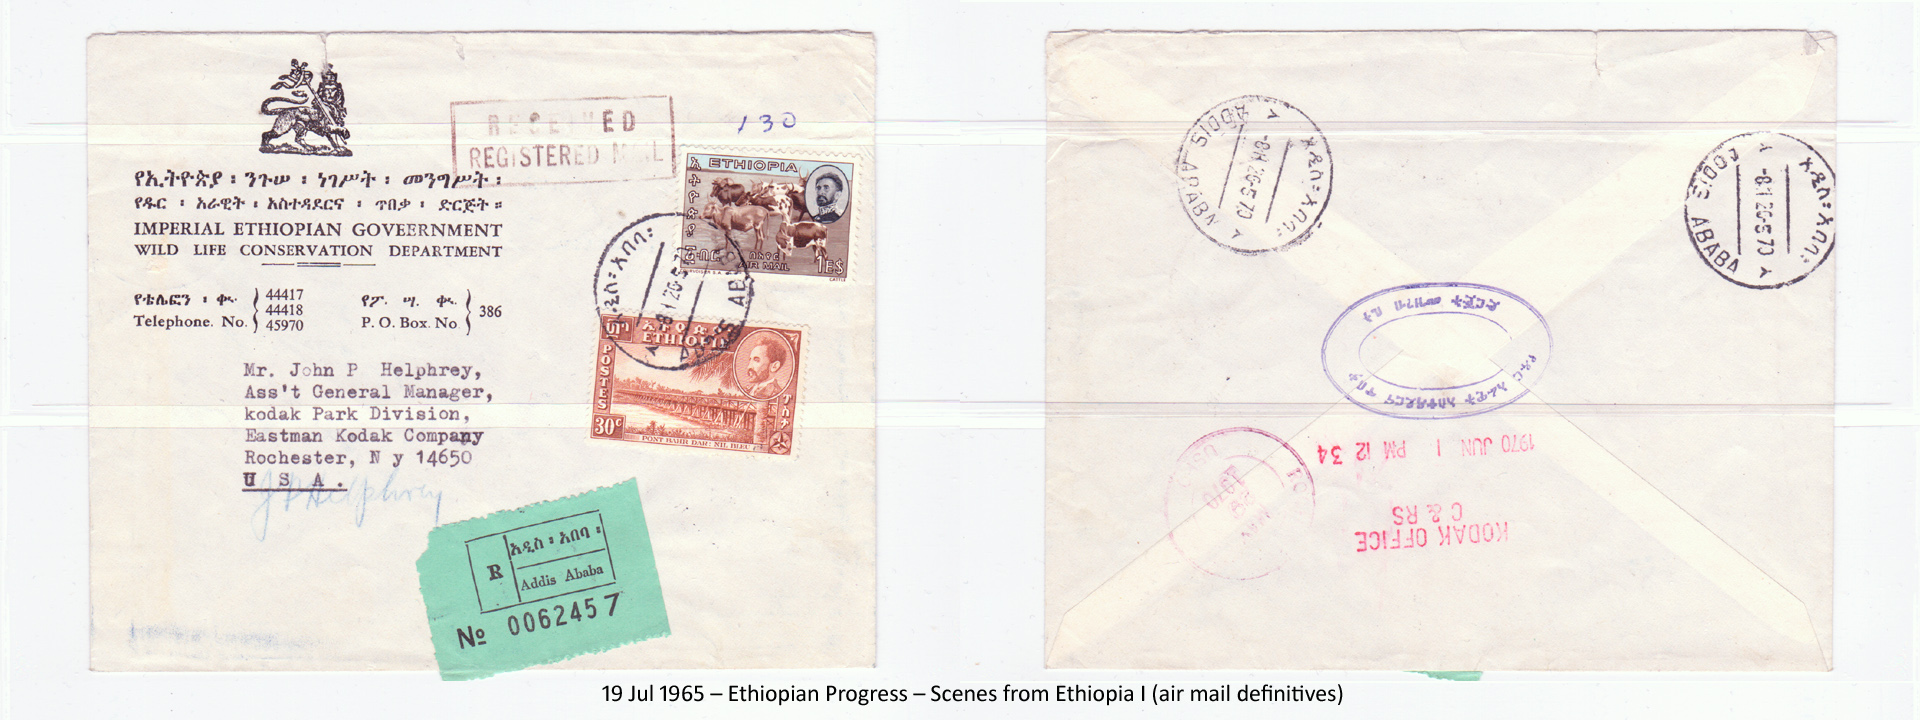 19650719 – Ethiopian Progress – Scenes from Ethiopia I (air mail definitives)